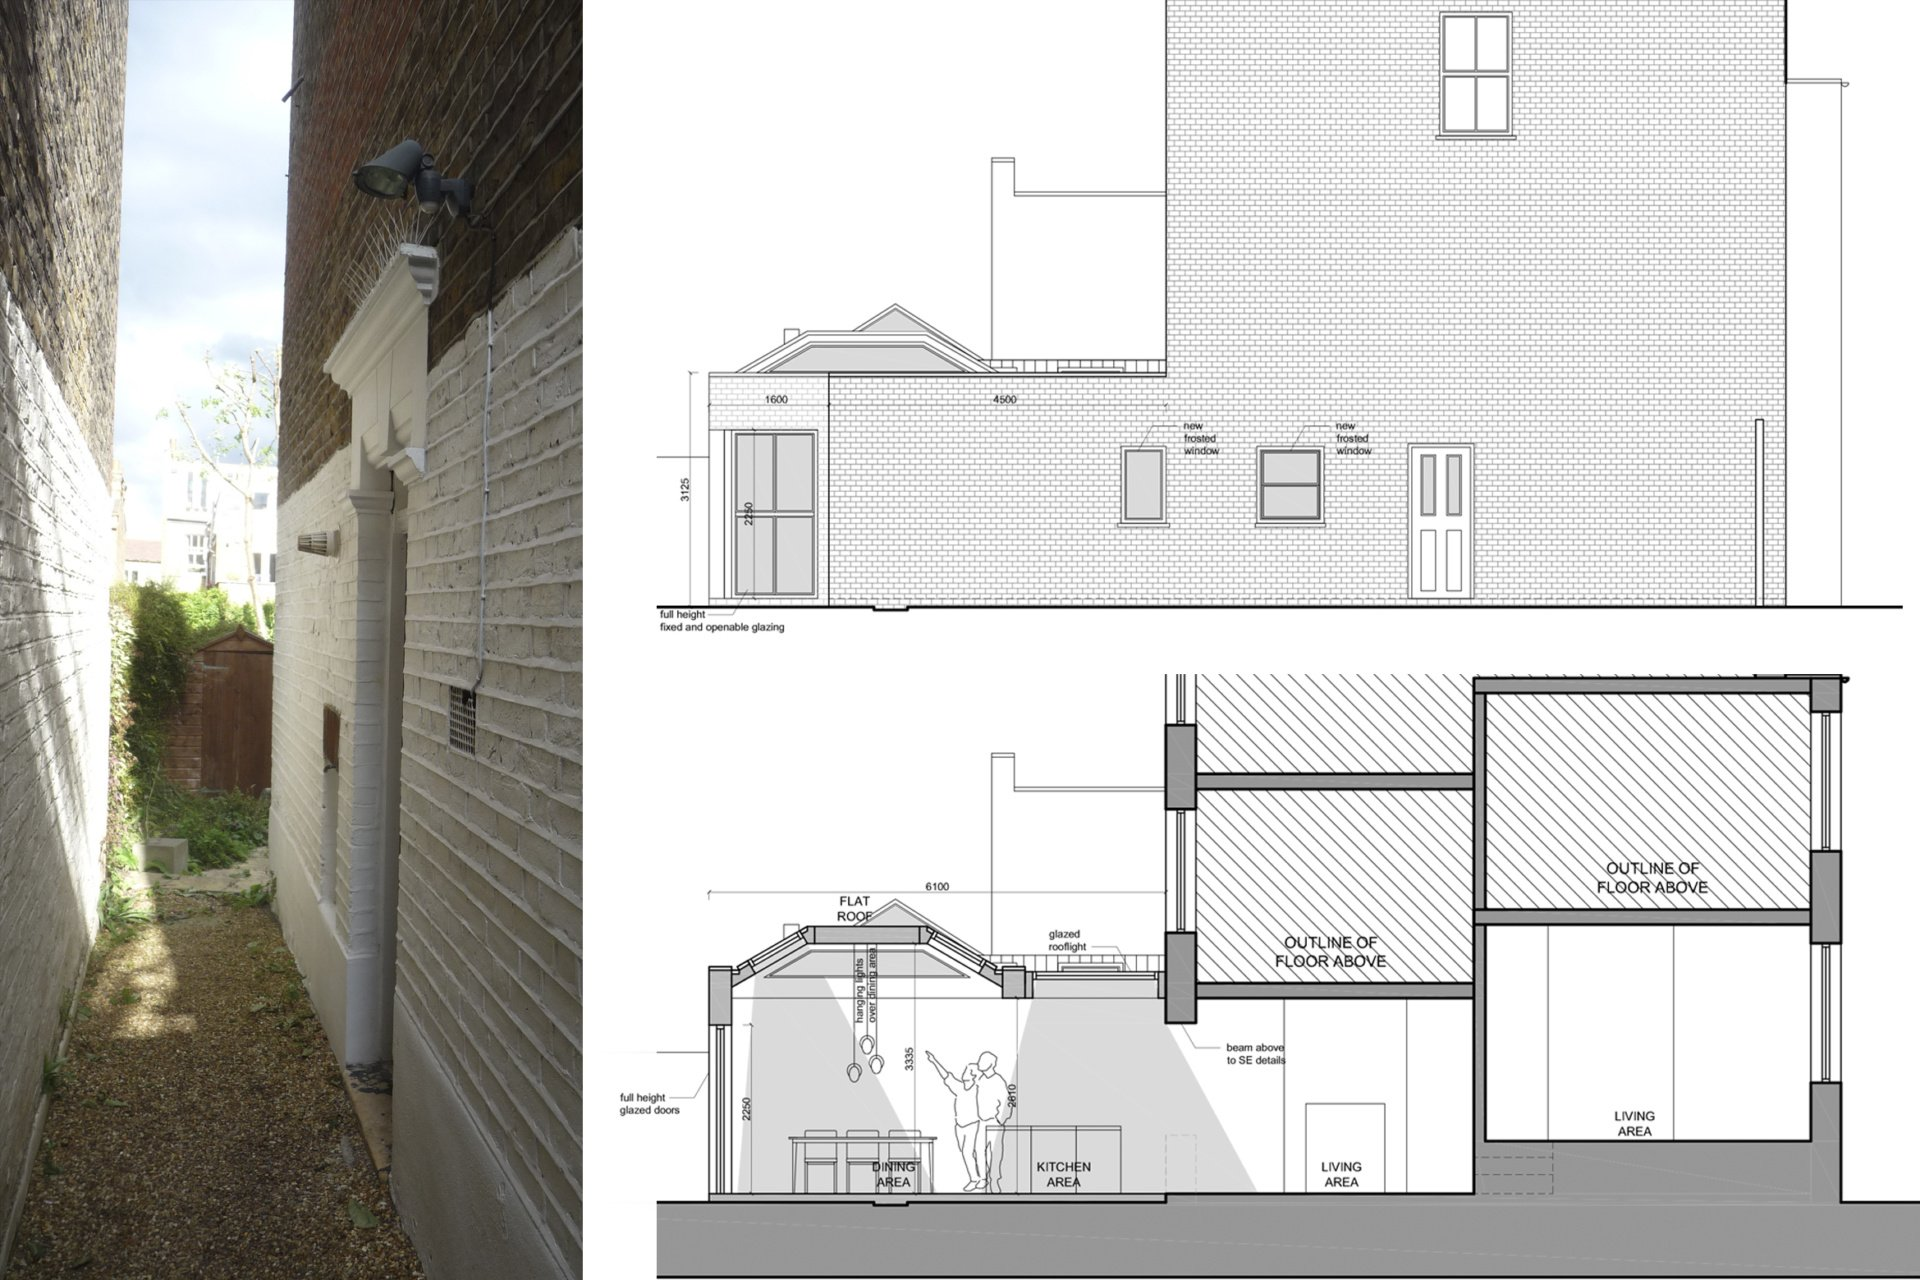 Architect designed garden flat extension Tooting Broadway Wandsworth SW17 Section and elevation 1 Tooting Broadway, Wandsworth SW17 | Garden flat extension